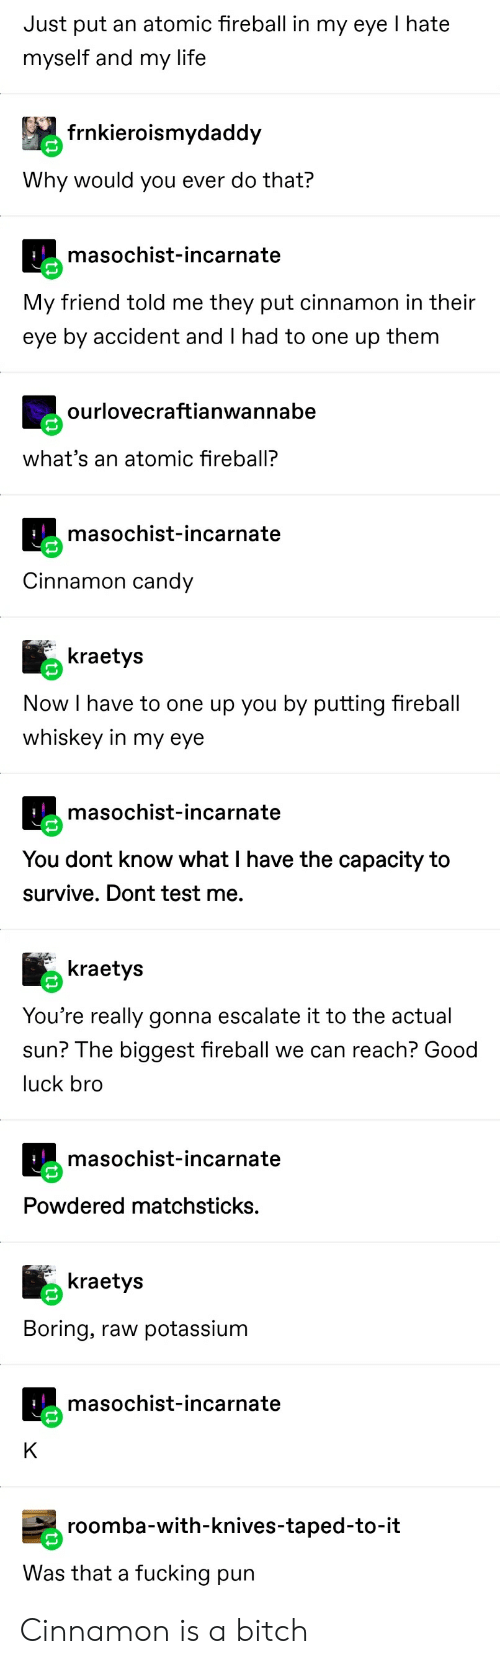 fireball whiskey: Just put an atomic fireball in my eye I hate  myself and my life  frnkieroismydaddy  Why would you ever do that?  masochist-incarnate  My friend told me they put cinnamon in their  eye by accident and I had to one up them  ourlovecraftianwannabe  what's an atomic fireball?  masochist-incarnate  Cinnamon candy  kraetys  Now I have to one up you by putting fireball  whiskey in my eye  masochist-incarnate  You dont know what I have the capacity to  survive. Dont test me.  kraetys  You're really gonna escalate it to the actual  sun? The biggest fireball we can reach? Good  luck bro  masochist-incarnate  Powdered matchsticks.  kraetys  Boring, raw  potassium  masochist-incarnate  K  roomba-with-knives-taped-to-it  Was that a fucking pun Cinnamon is a bitch